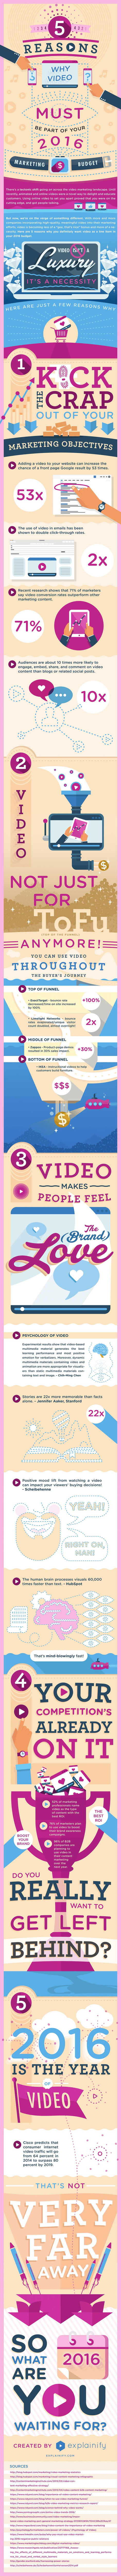 Video is not a luxury it's necessity, here are just a few reason why - #infographic